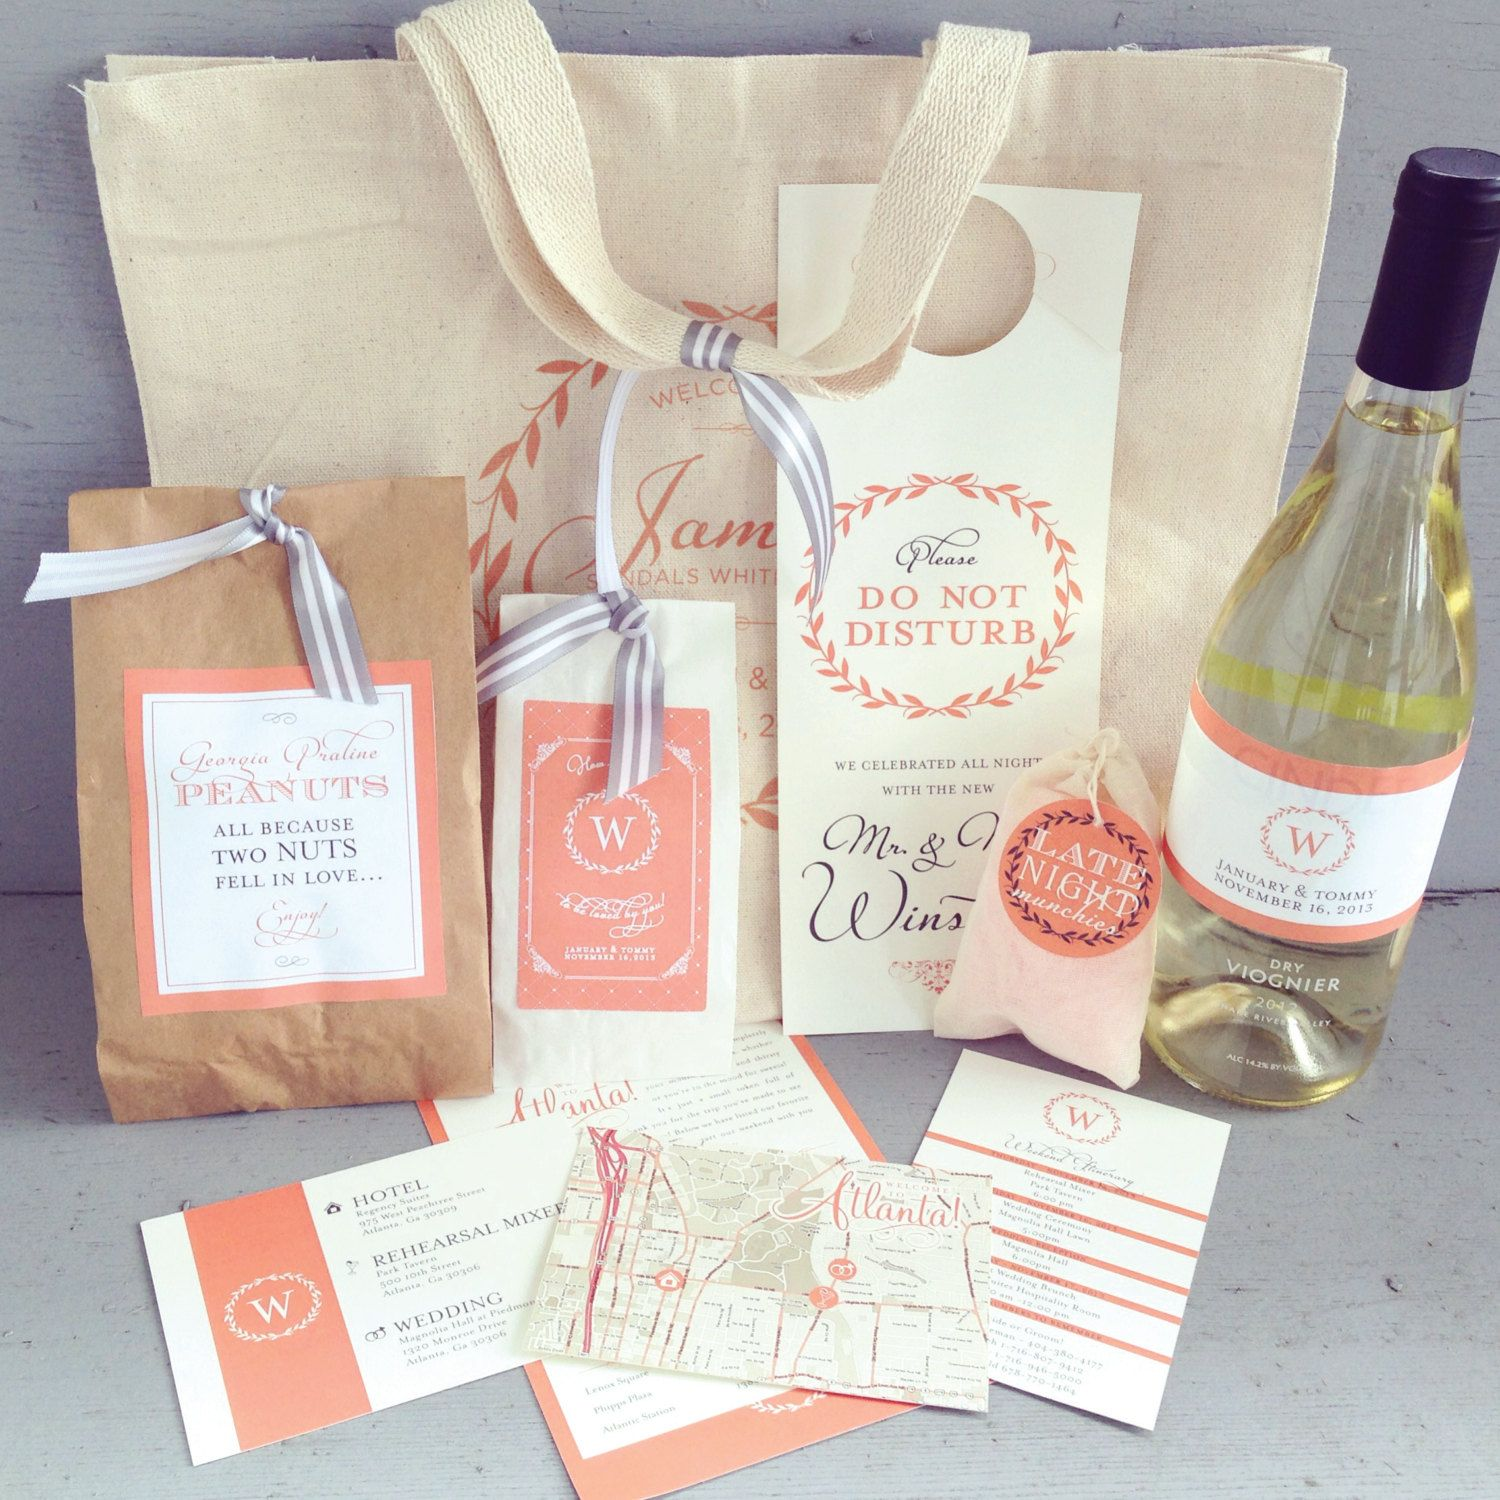 wedding welcome bags - what goes in them? | wedding and weddings